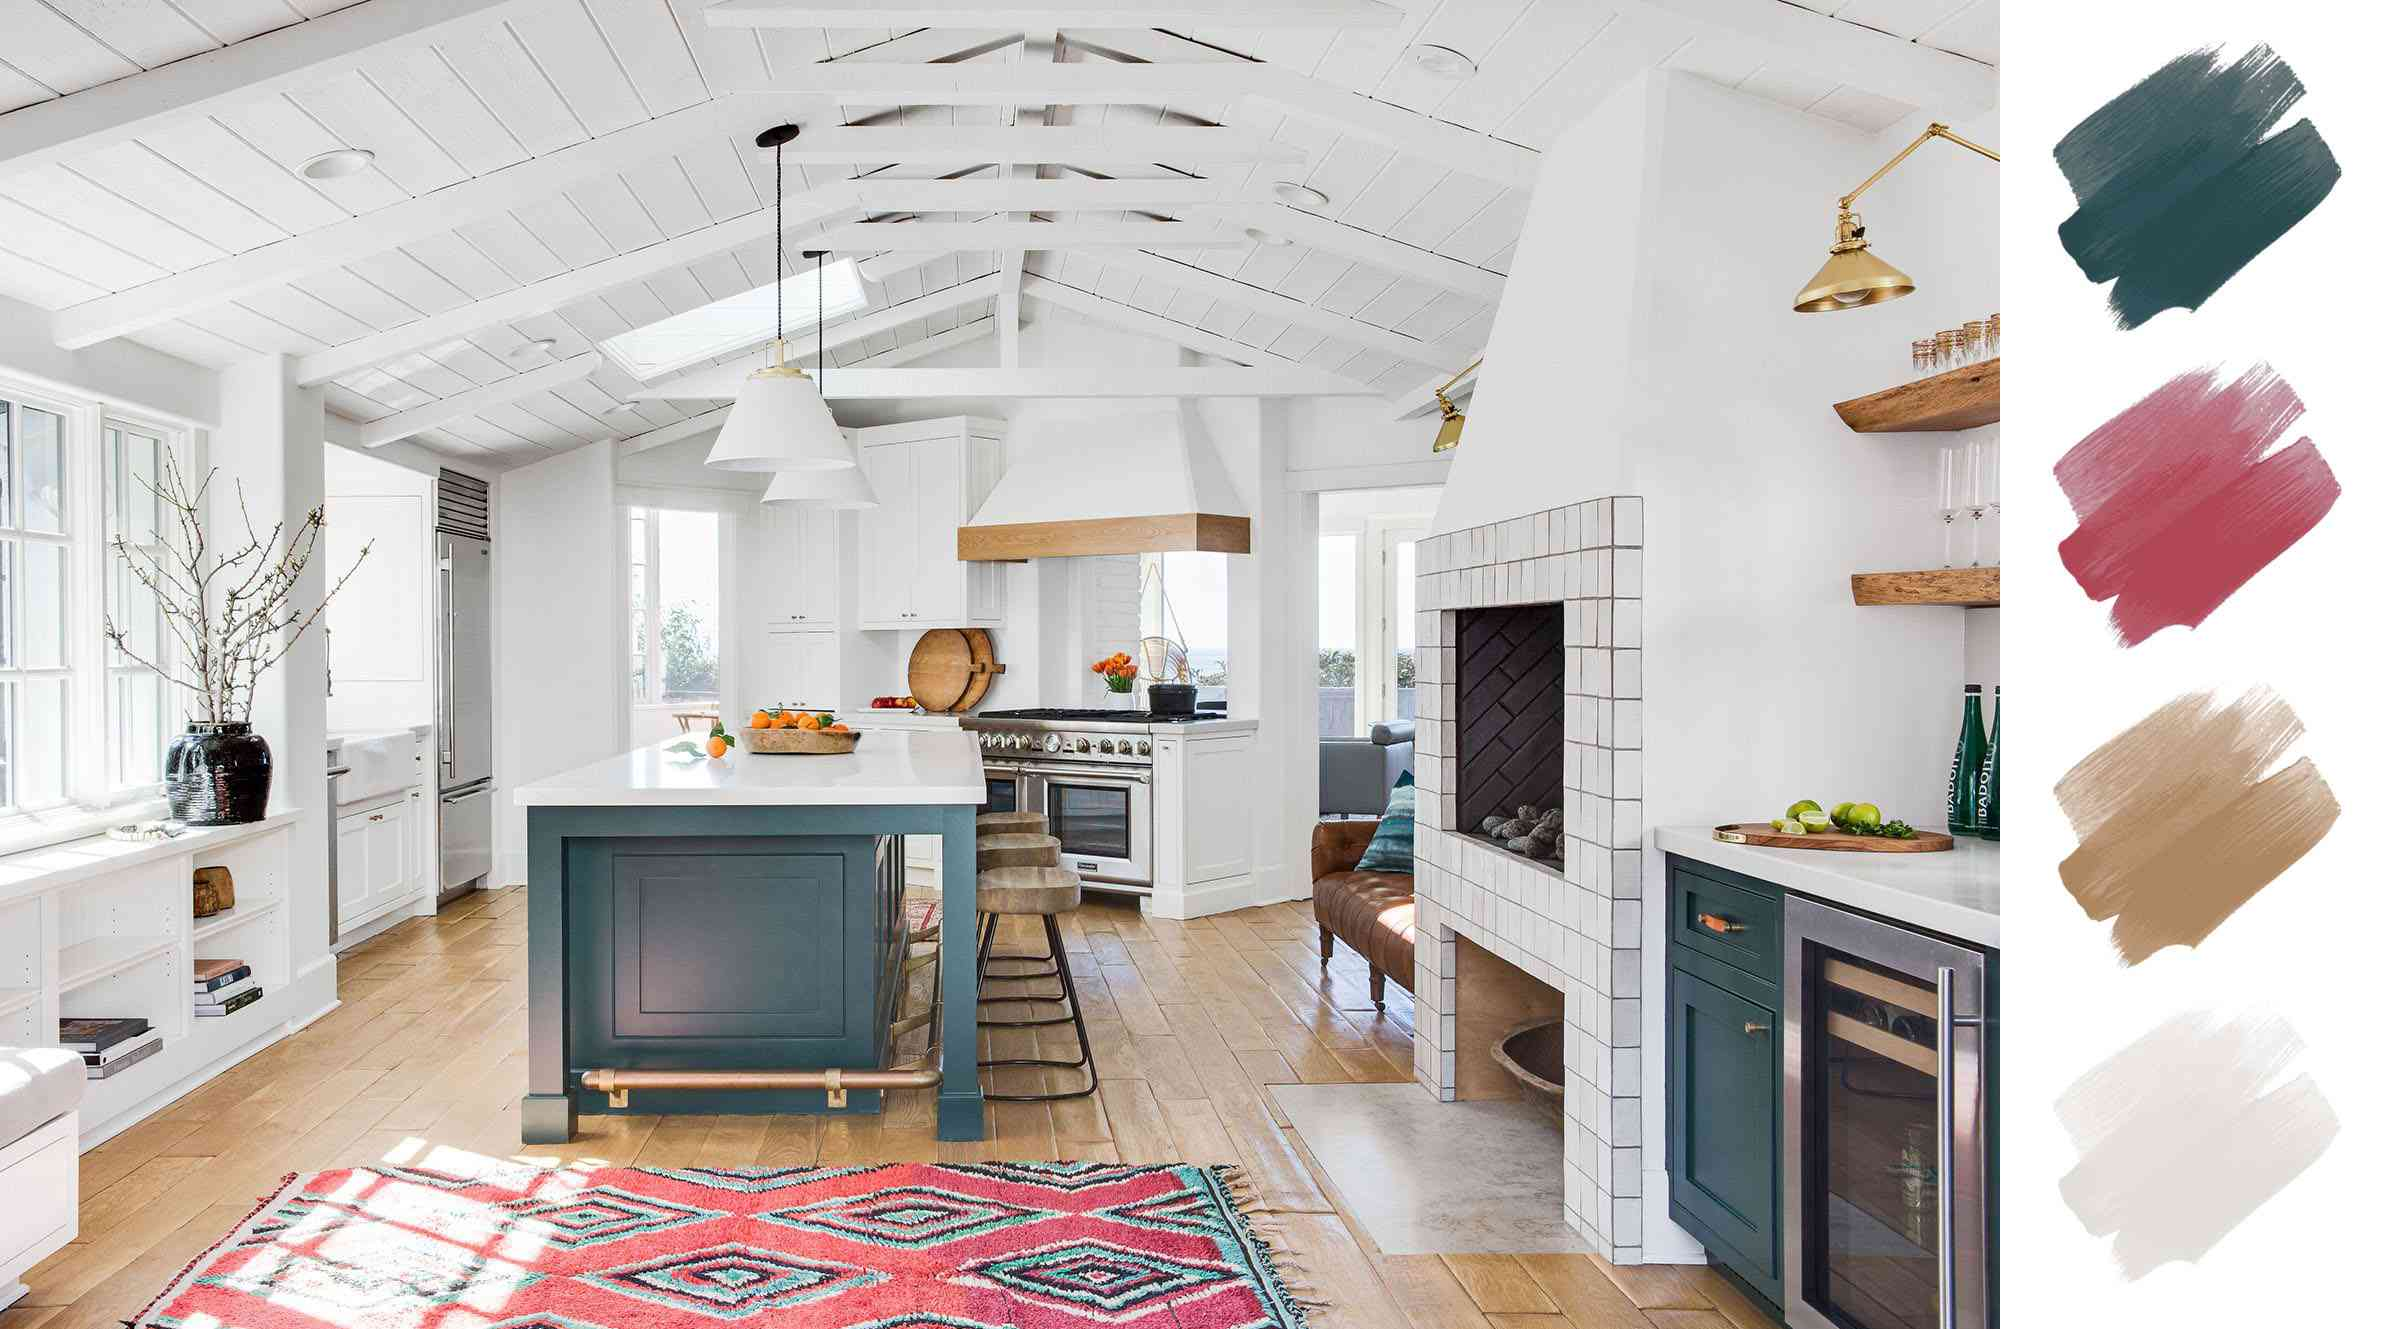 kitchen color schemes - green and white